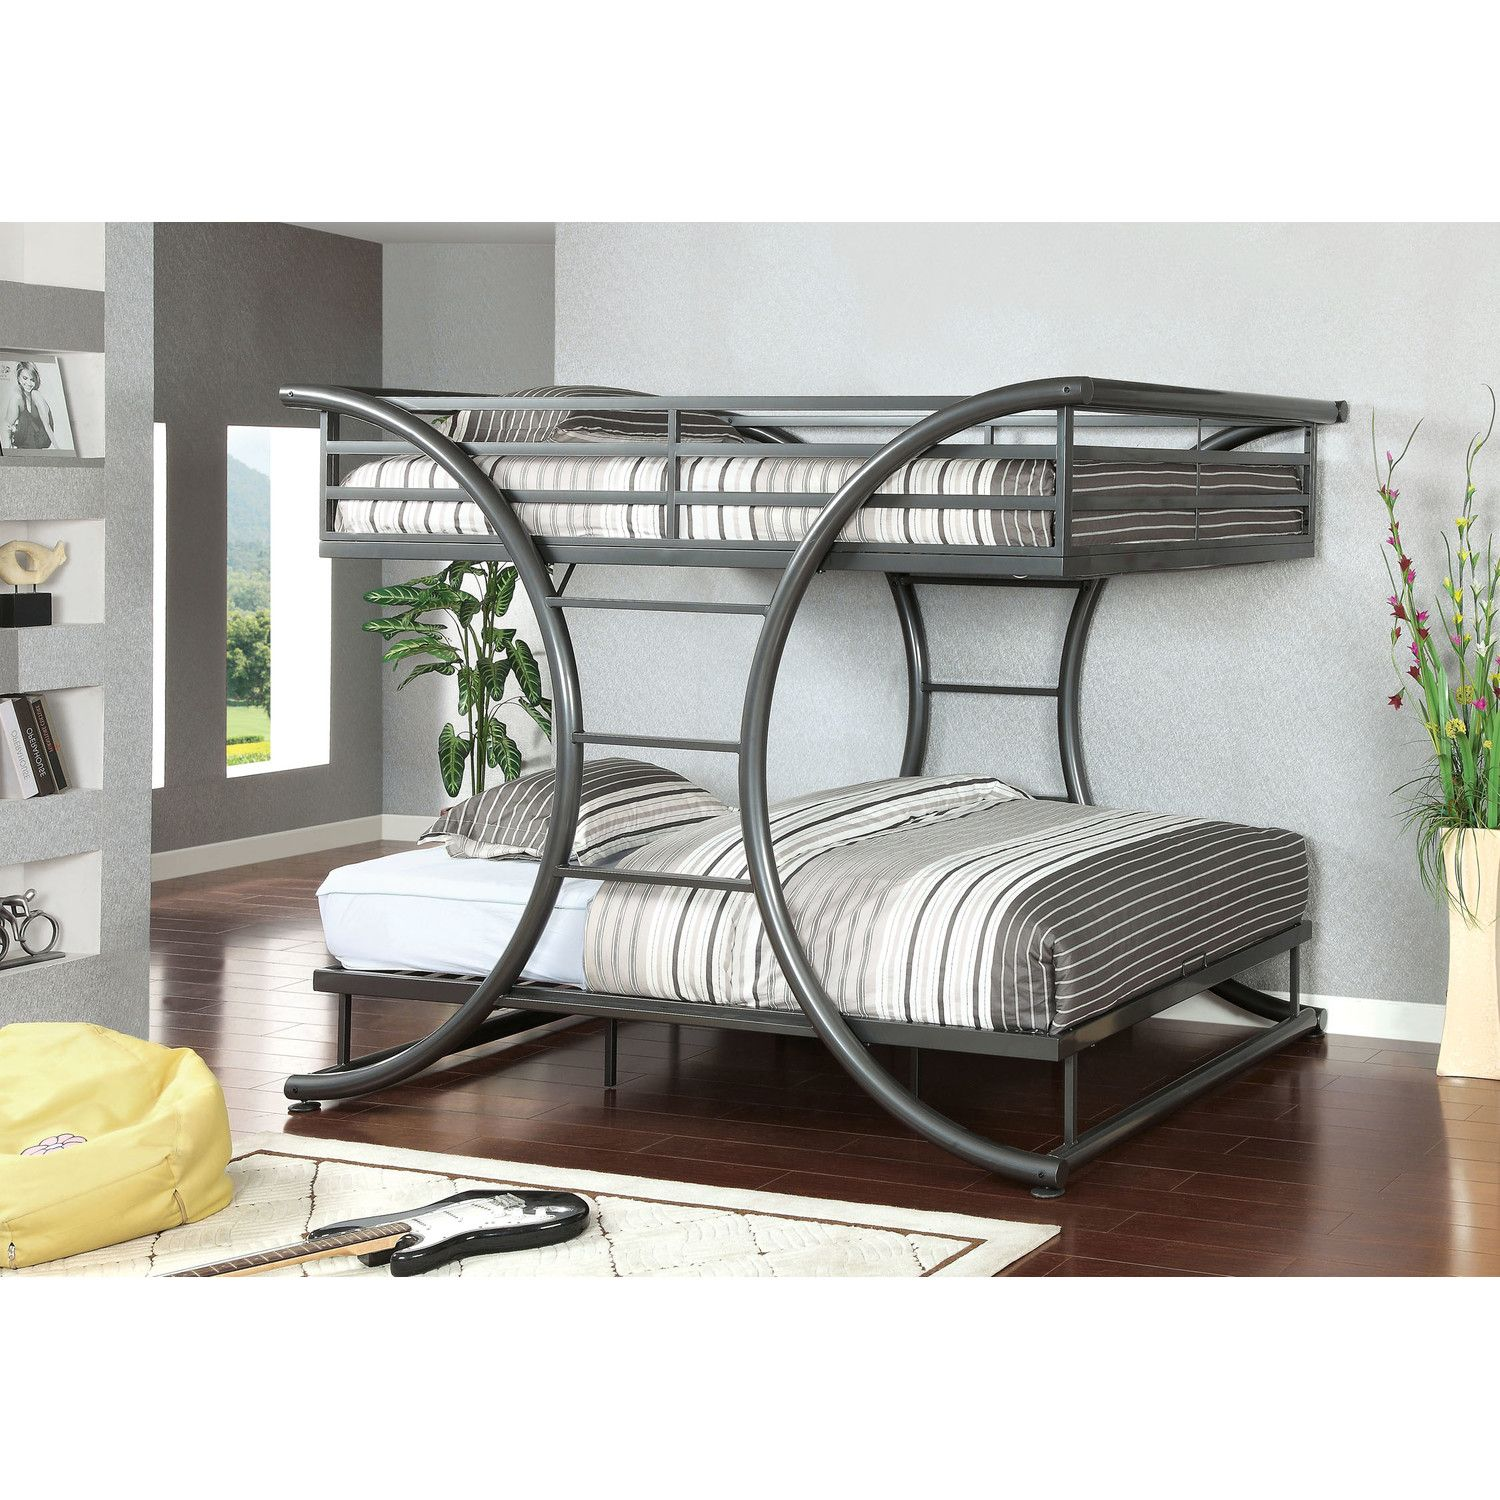 Queen loft bed ideas  Hokku Designs Cervia Full Over Full Bunk Bed  ciekawe pomysły